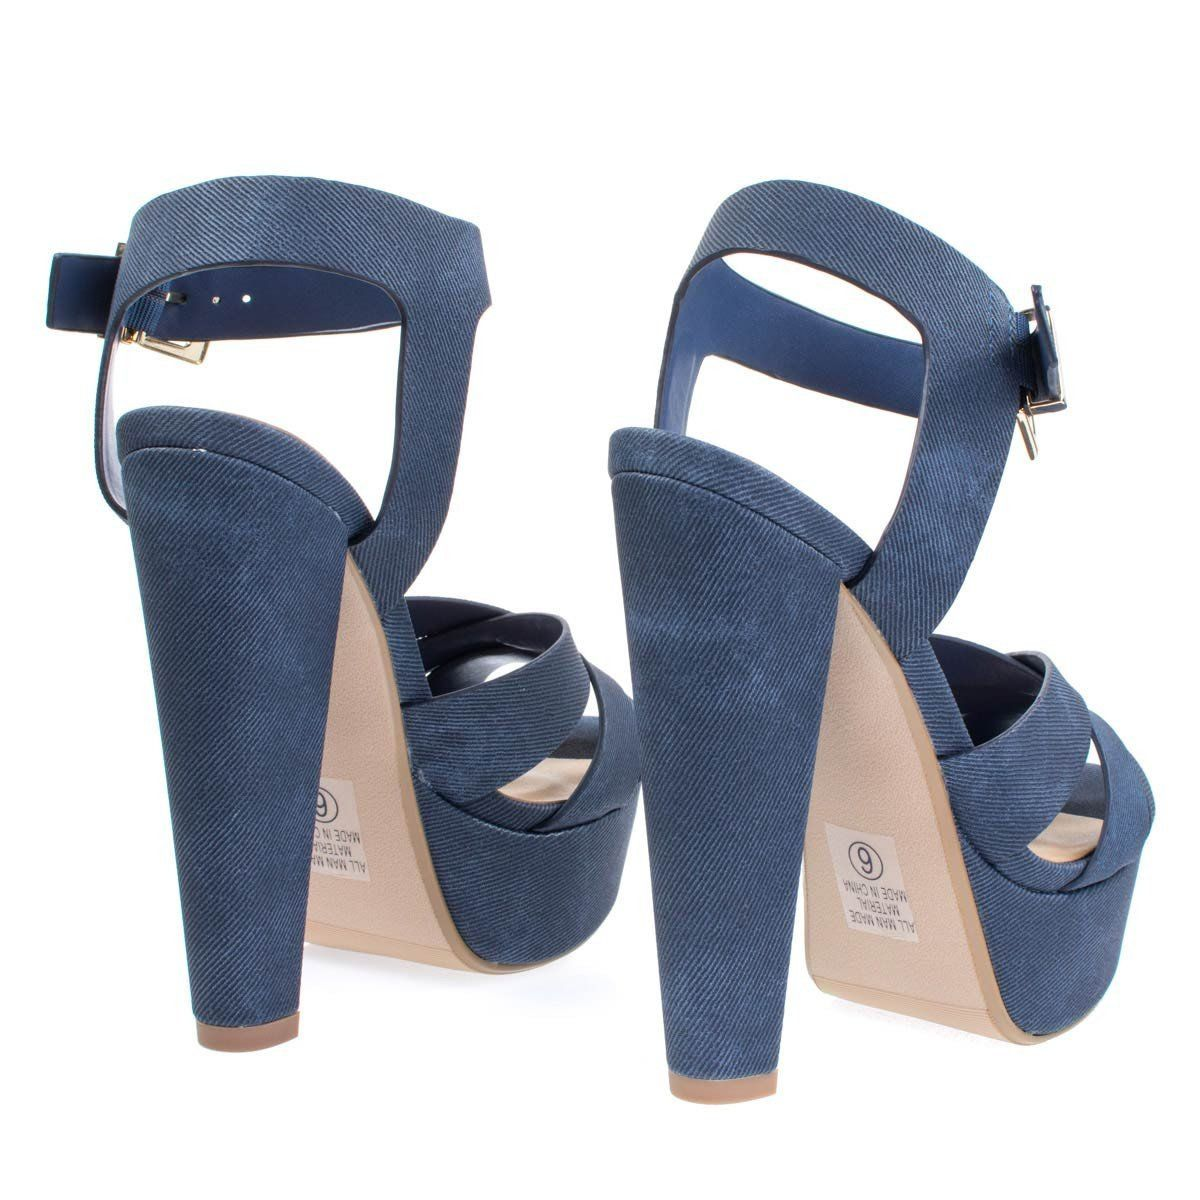 d4f48af724c8 About This Shoes  Stand tall and proud with these towering high platform  sandal featuring a